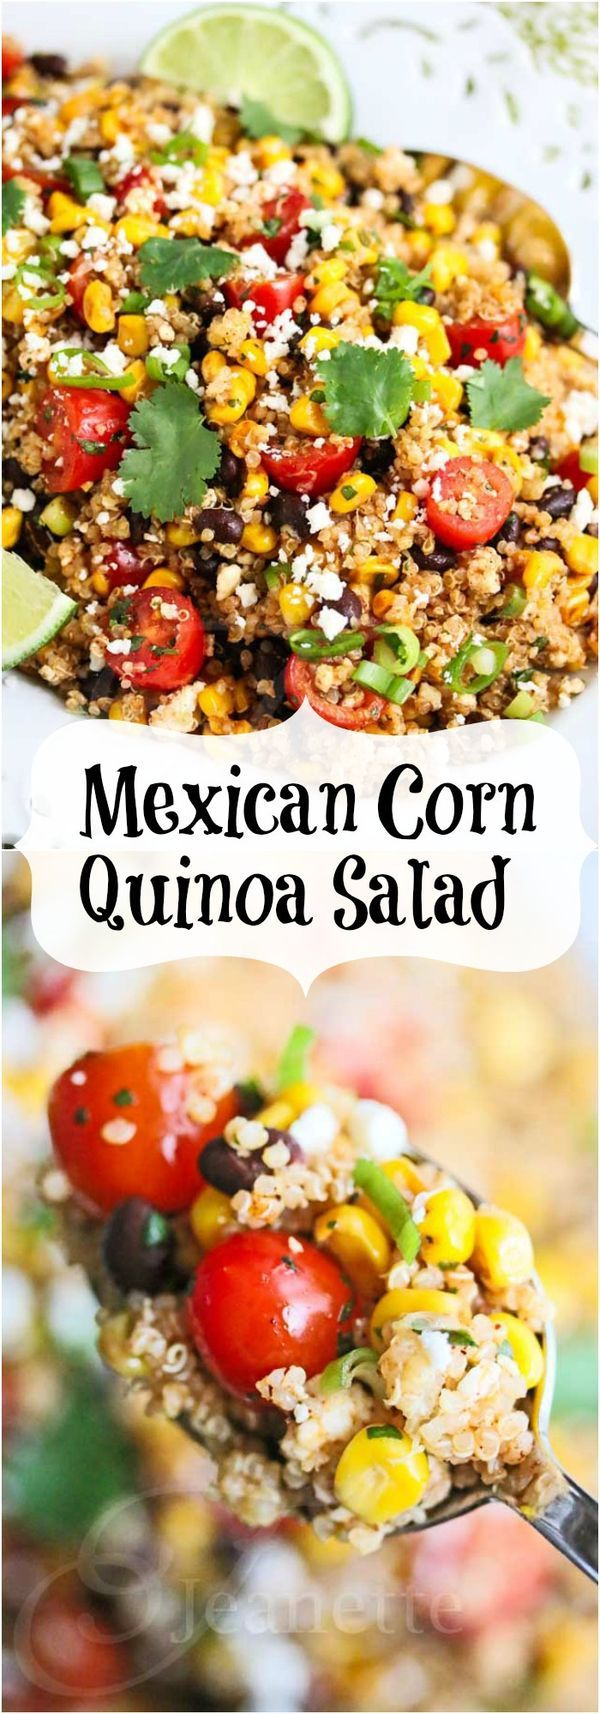 25+ best ideas about Mexican corn salad on Pinterest ...